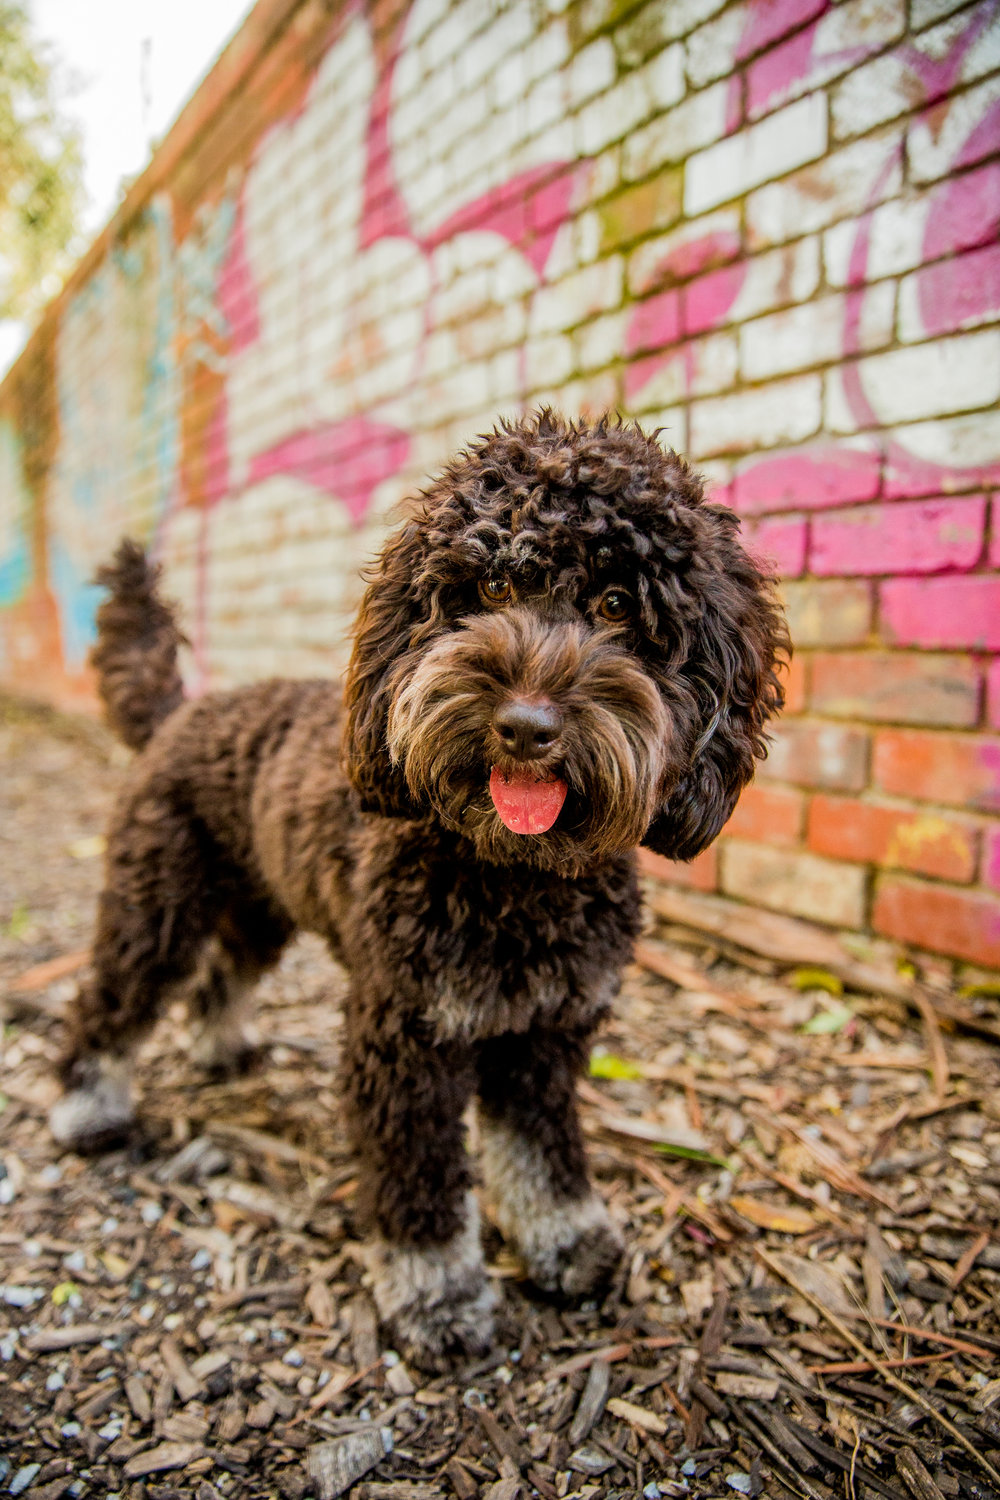 Lilo-ragamuffin-July_16(43)-edit-web.jpg